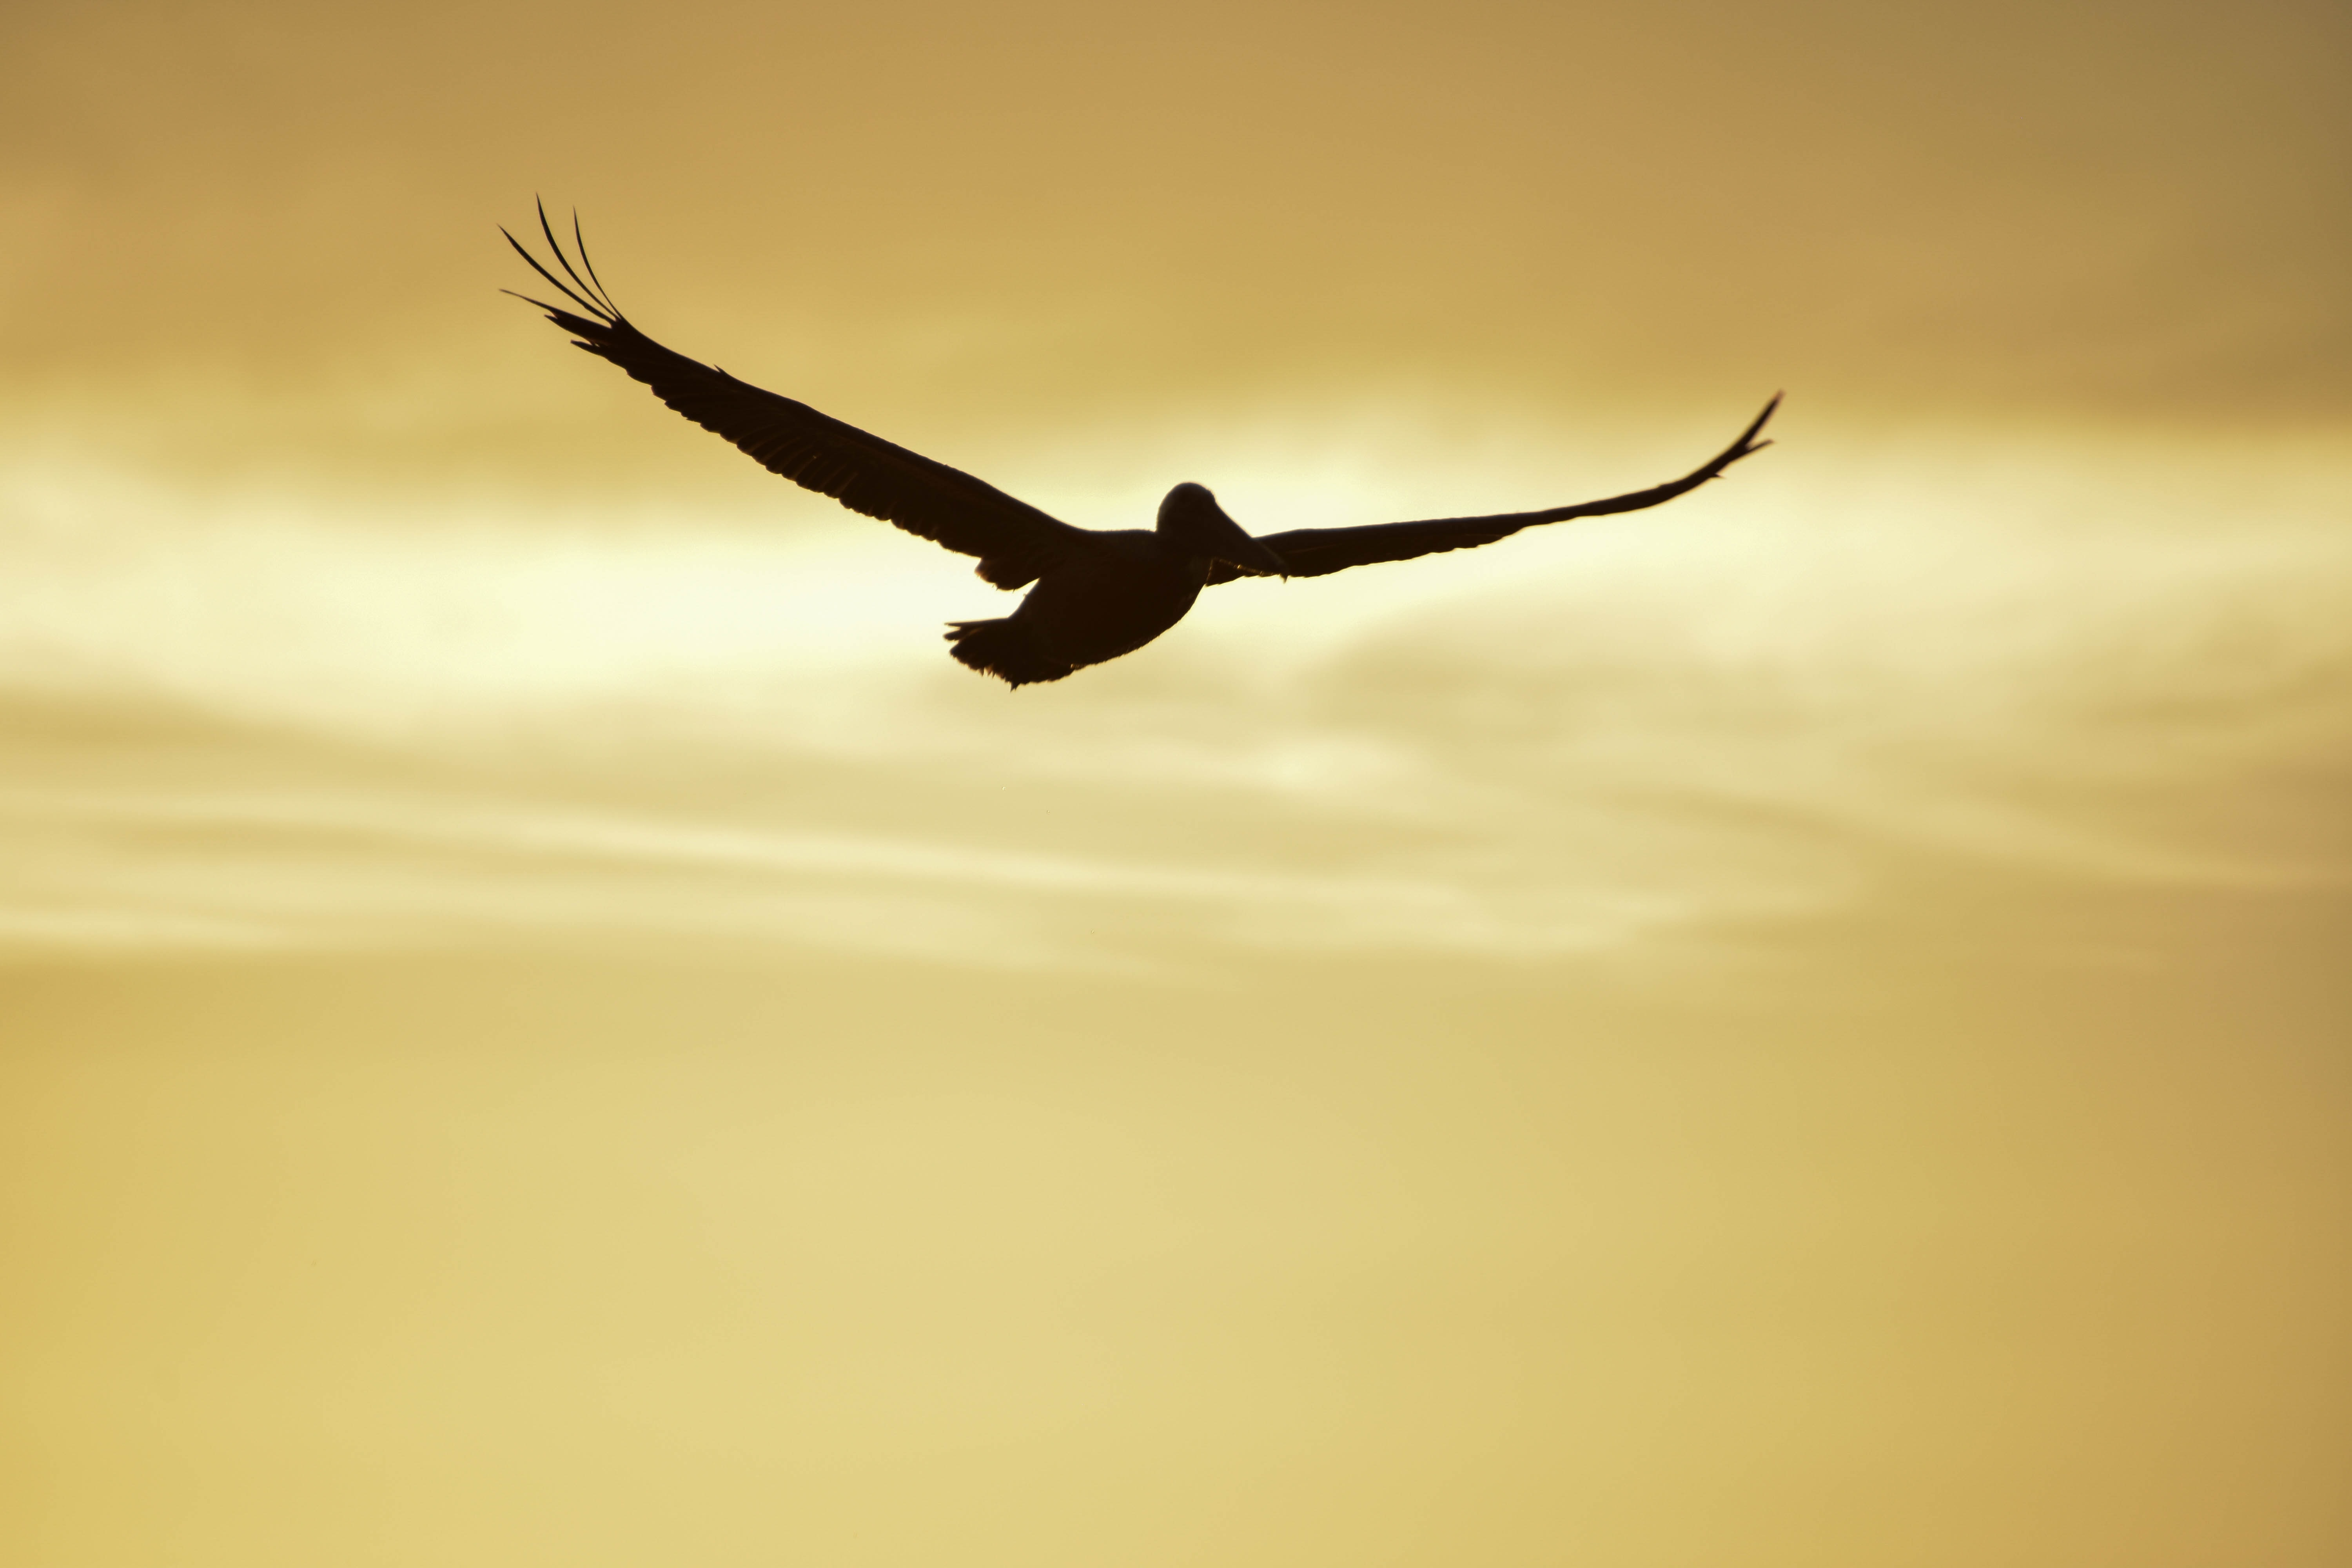 silhouette photography of flying bird